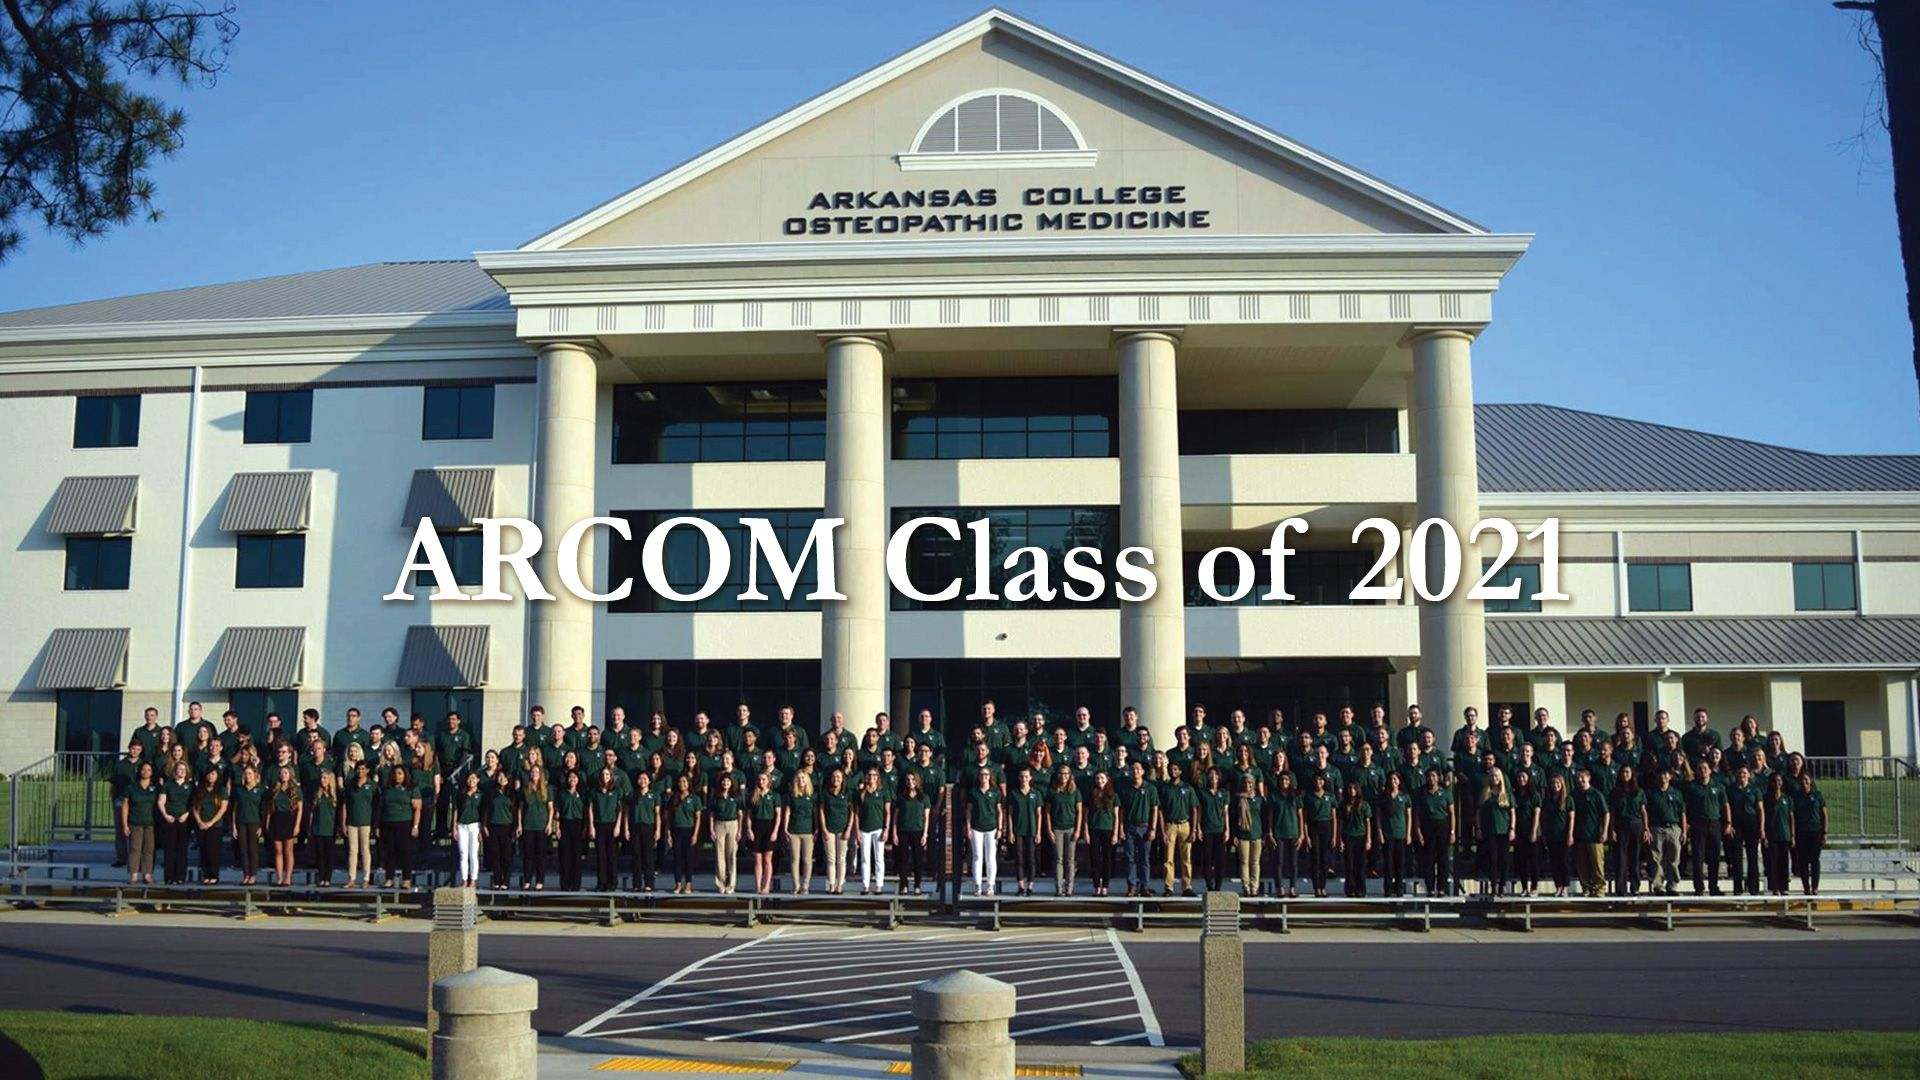 ARCOM's First Class of Doctors is Graduating